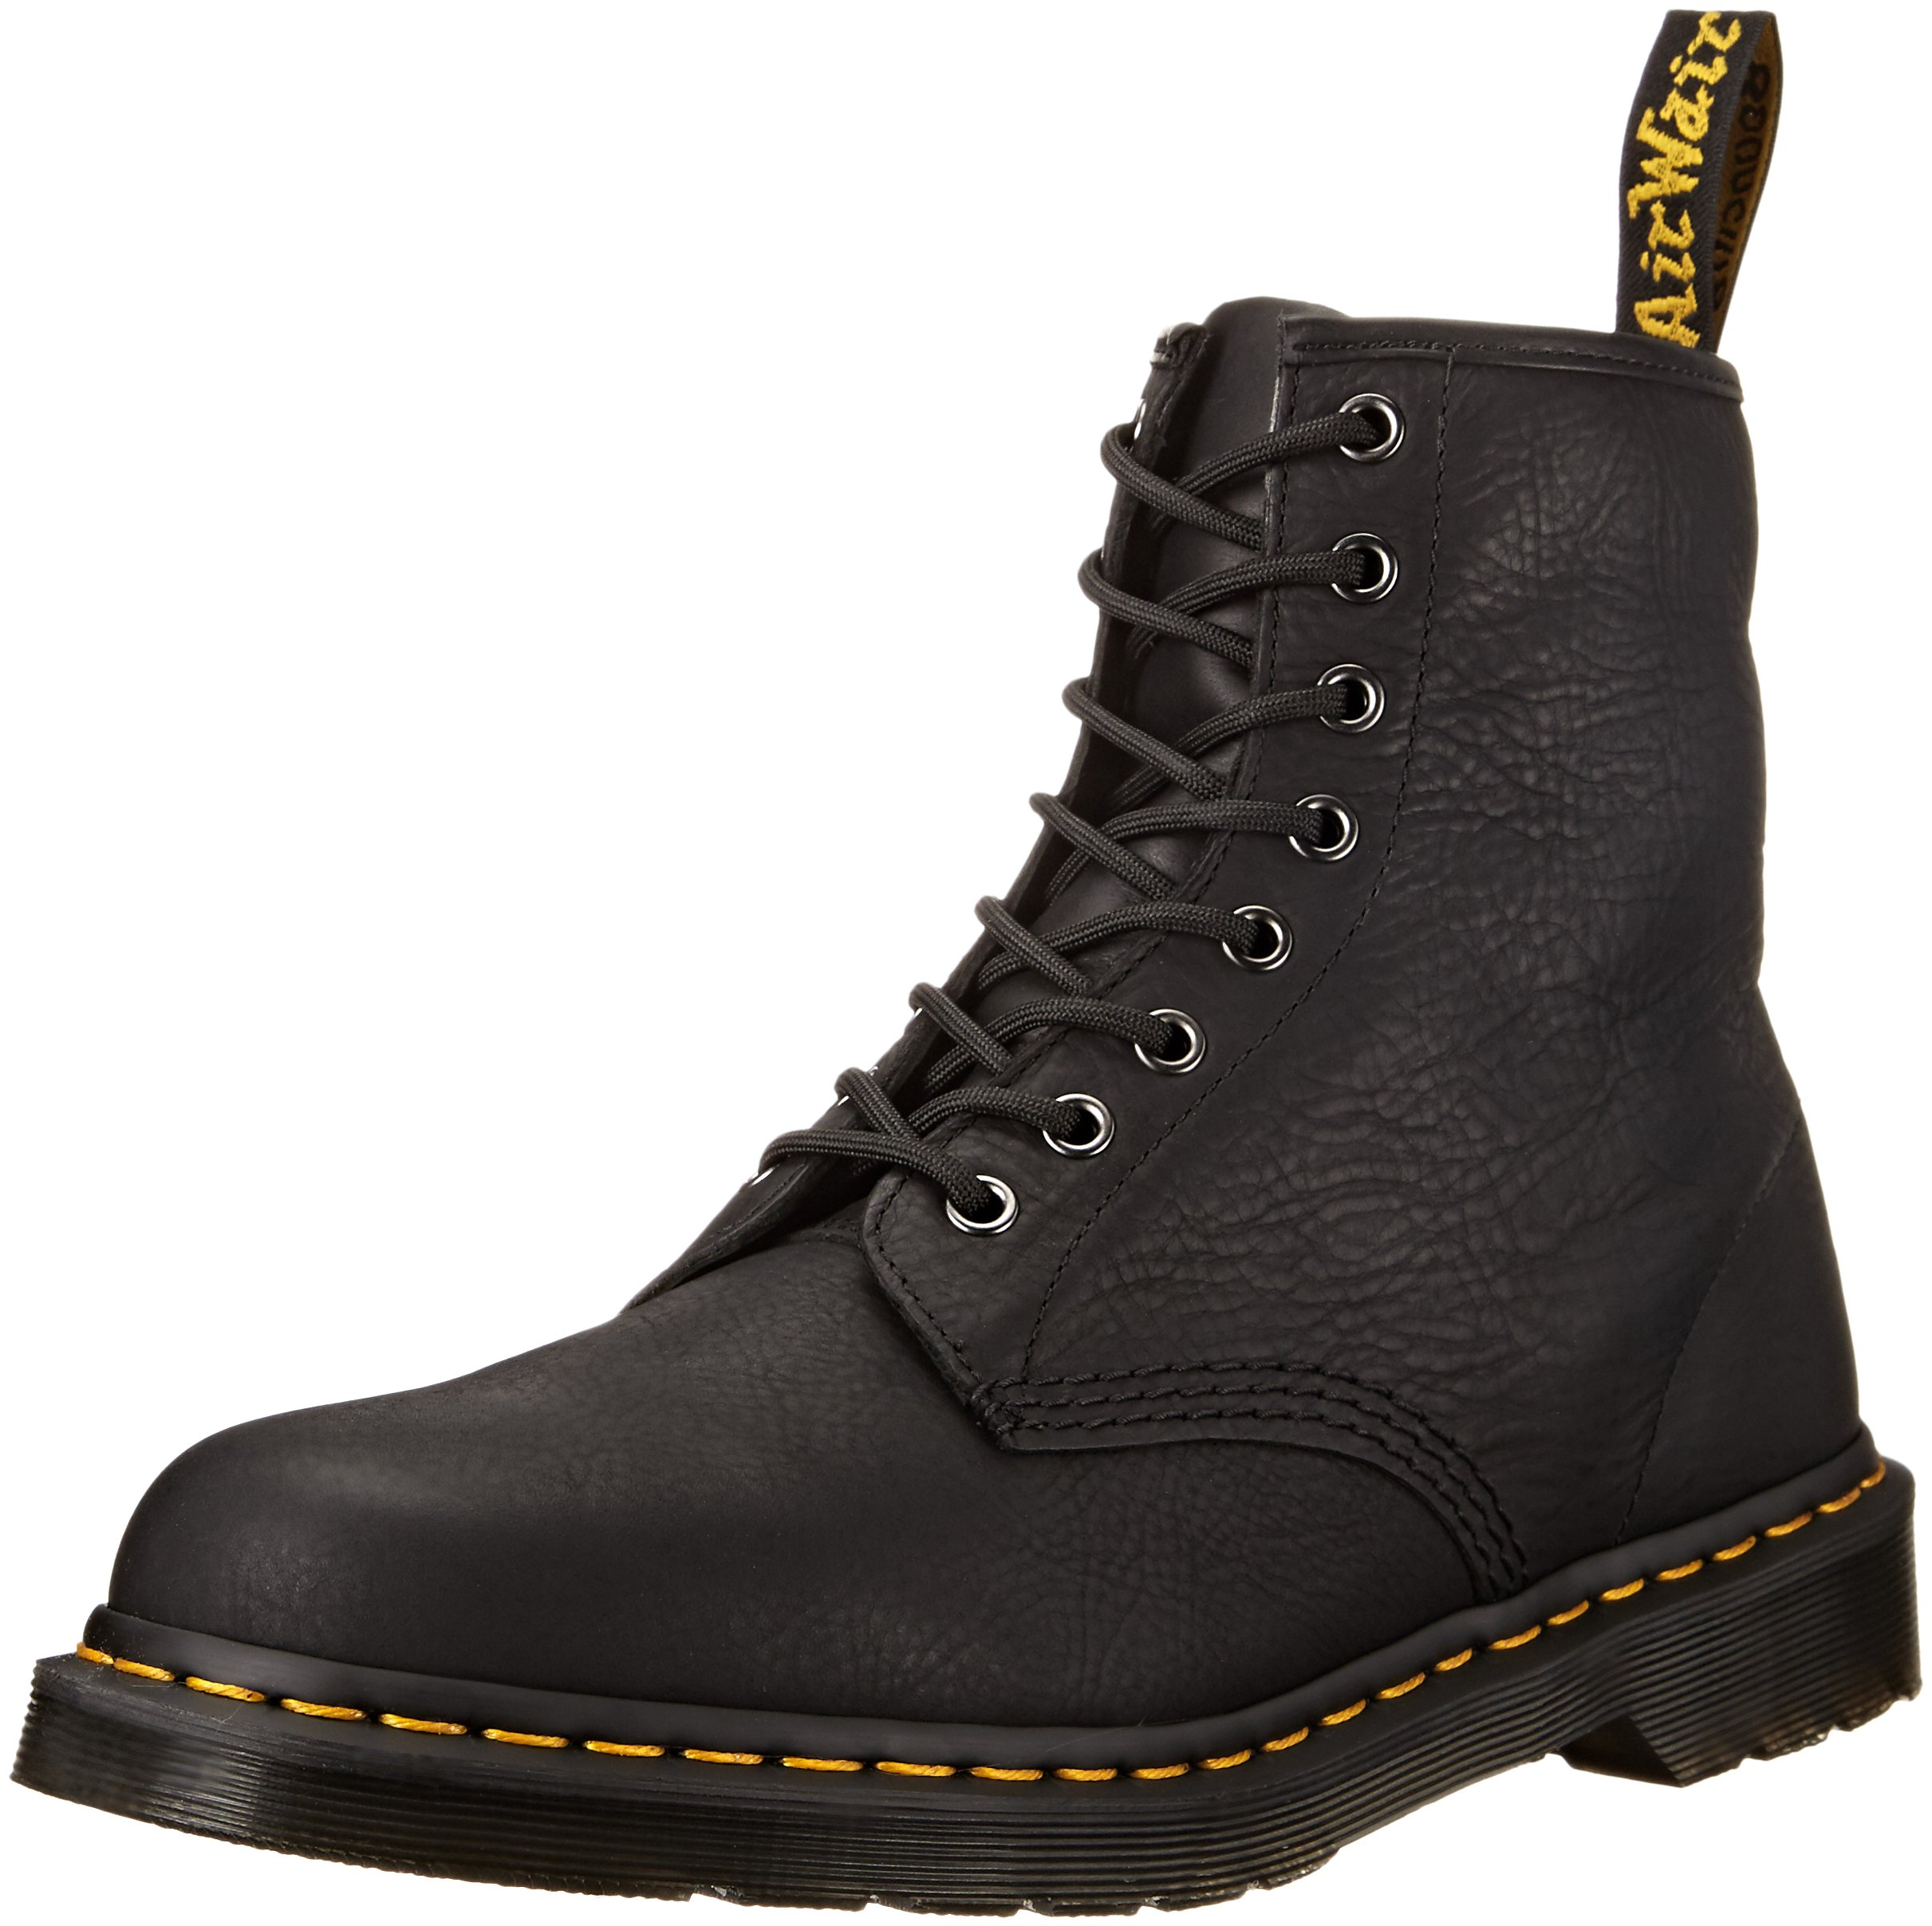 Dr. Martens Men's 1460 Carpathian Combat Boot, Black, 12 UK/13 M US by Dr. Martens